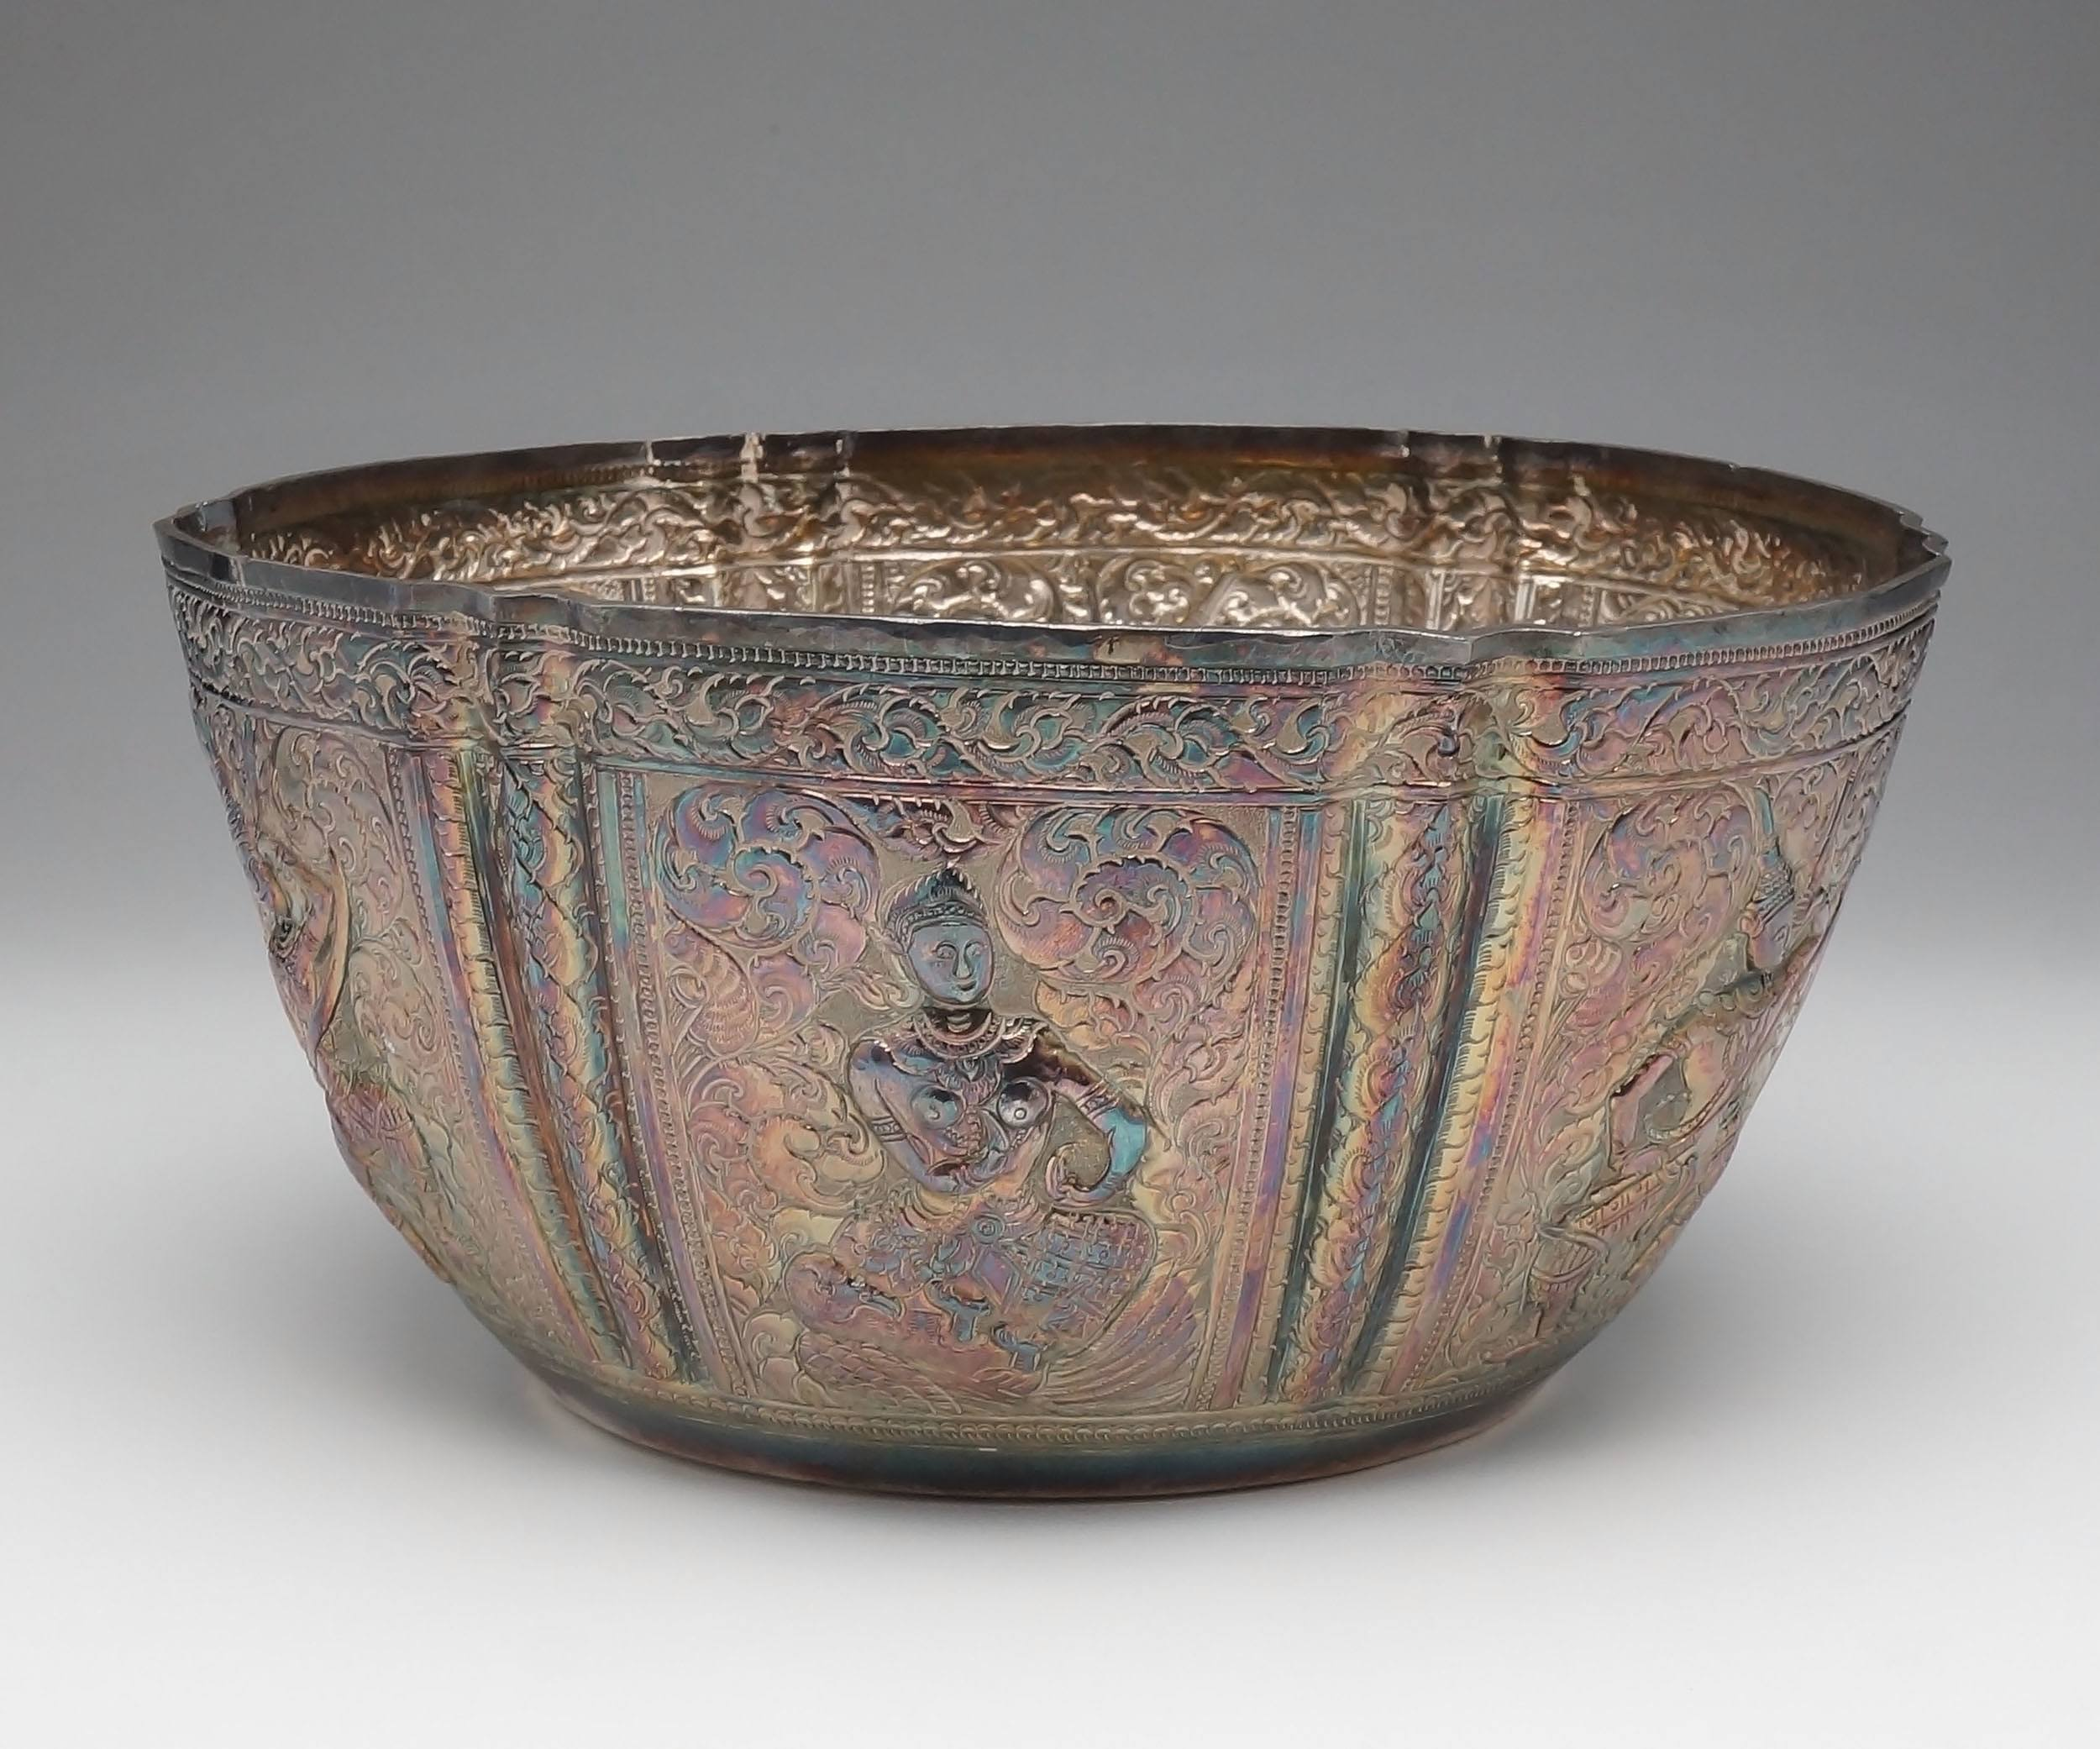 'Lao Silver Rouposse Rose Bowl with Six Facades of Alternating Warrior Figures Surrounded by Scrollwork'